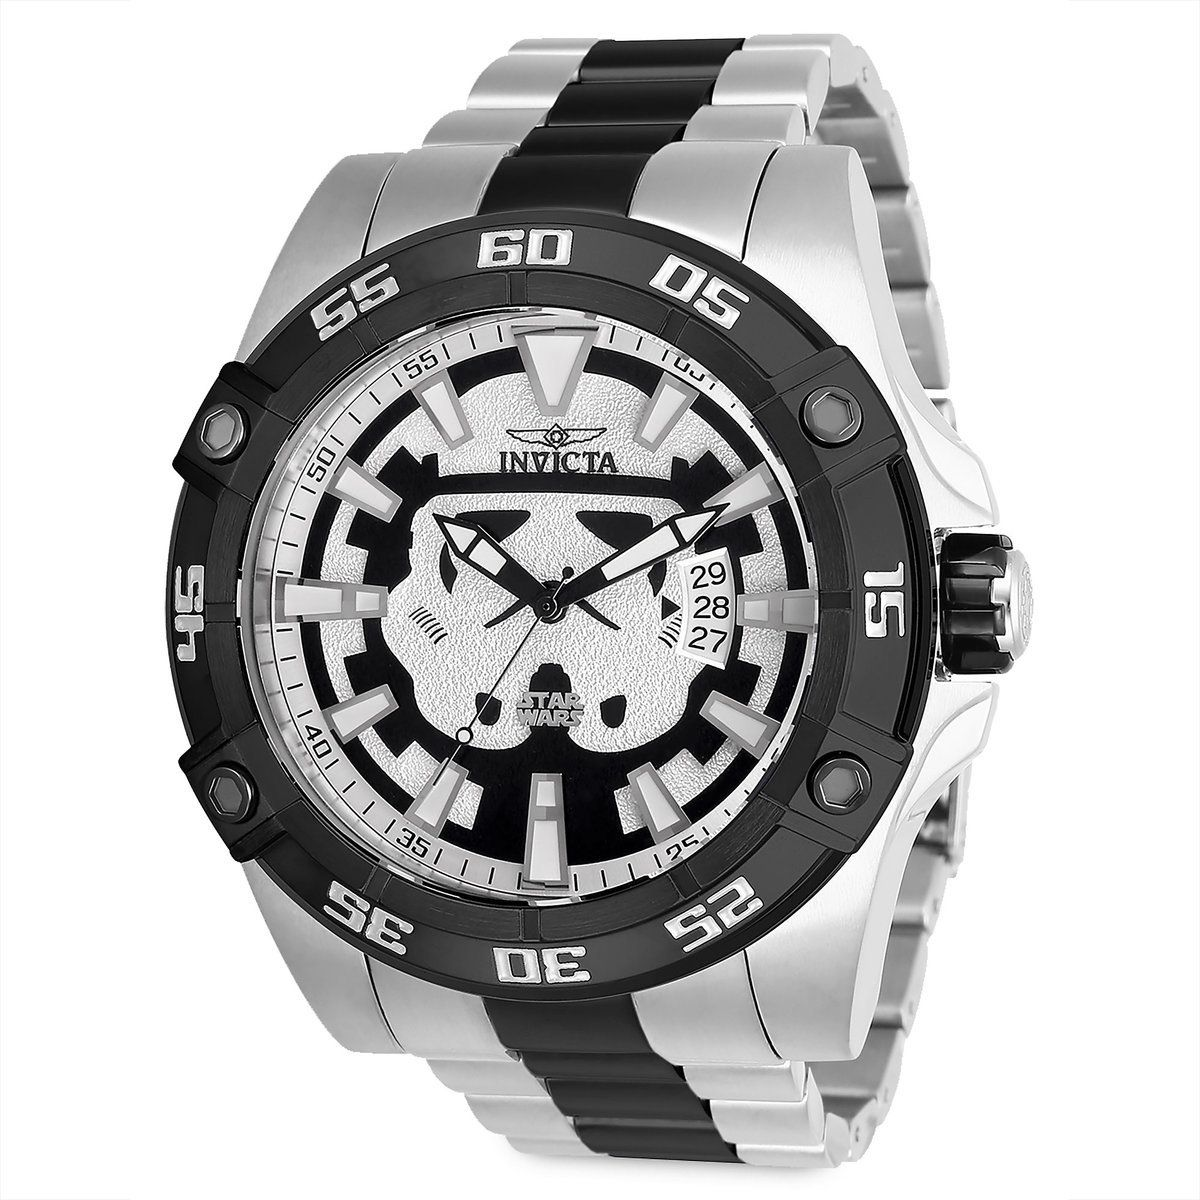 Product Image of Stormtrooper Watch for Men by INVICTA - Star Wars   1 10d66a3bab